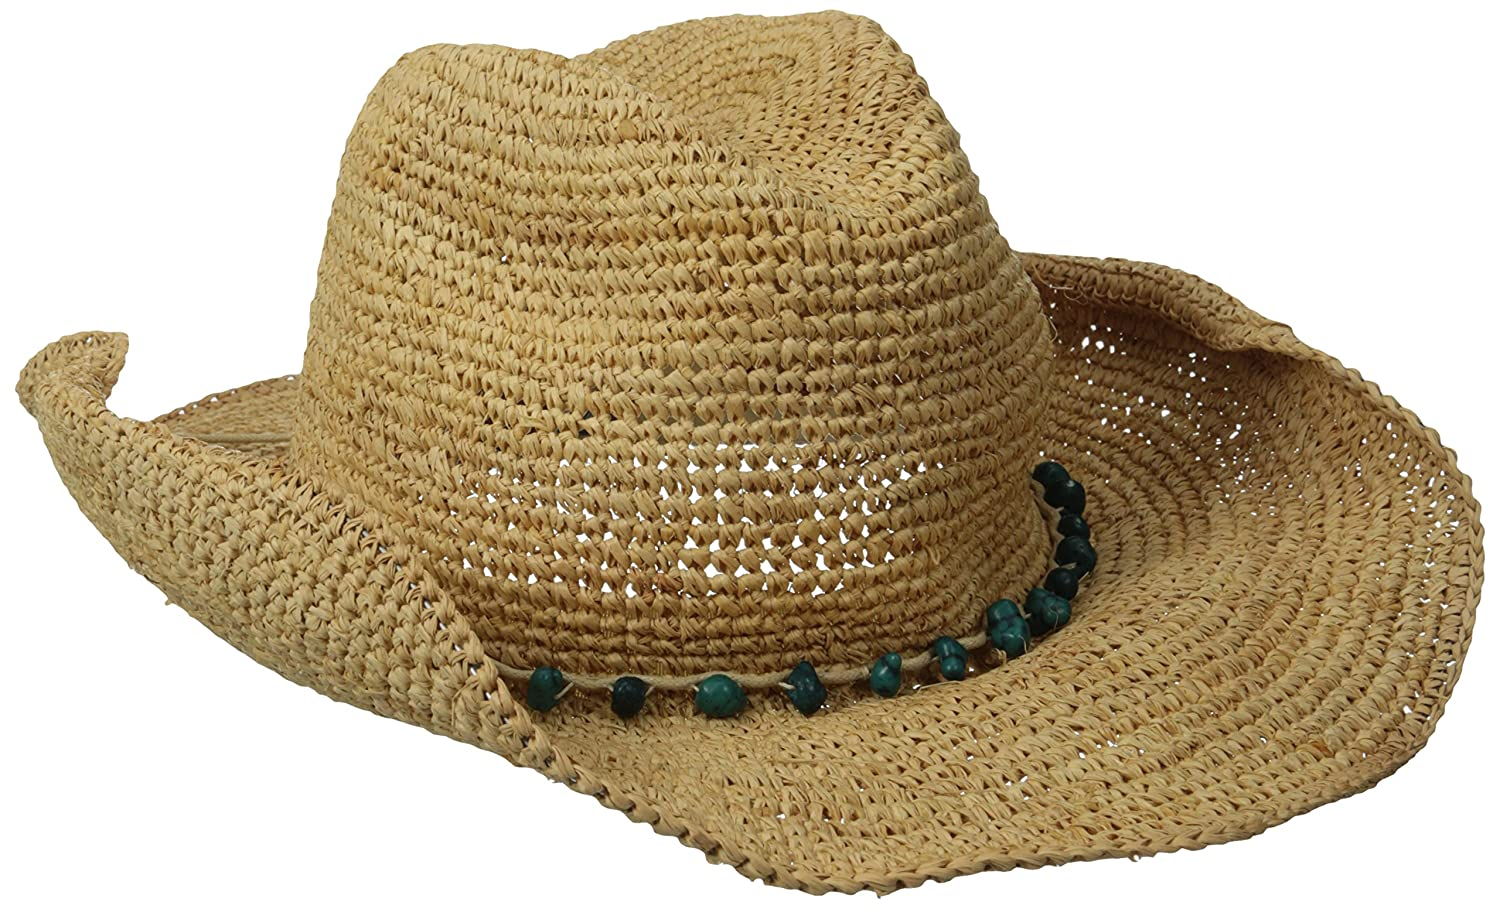 San Diego Hat Company Women's Crochet Raffia Cowboy Hat with Turquoise Hat Natural One Size rhc1074